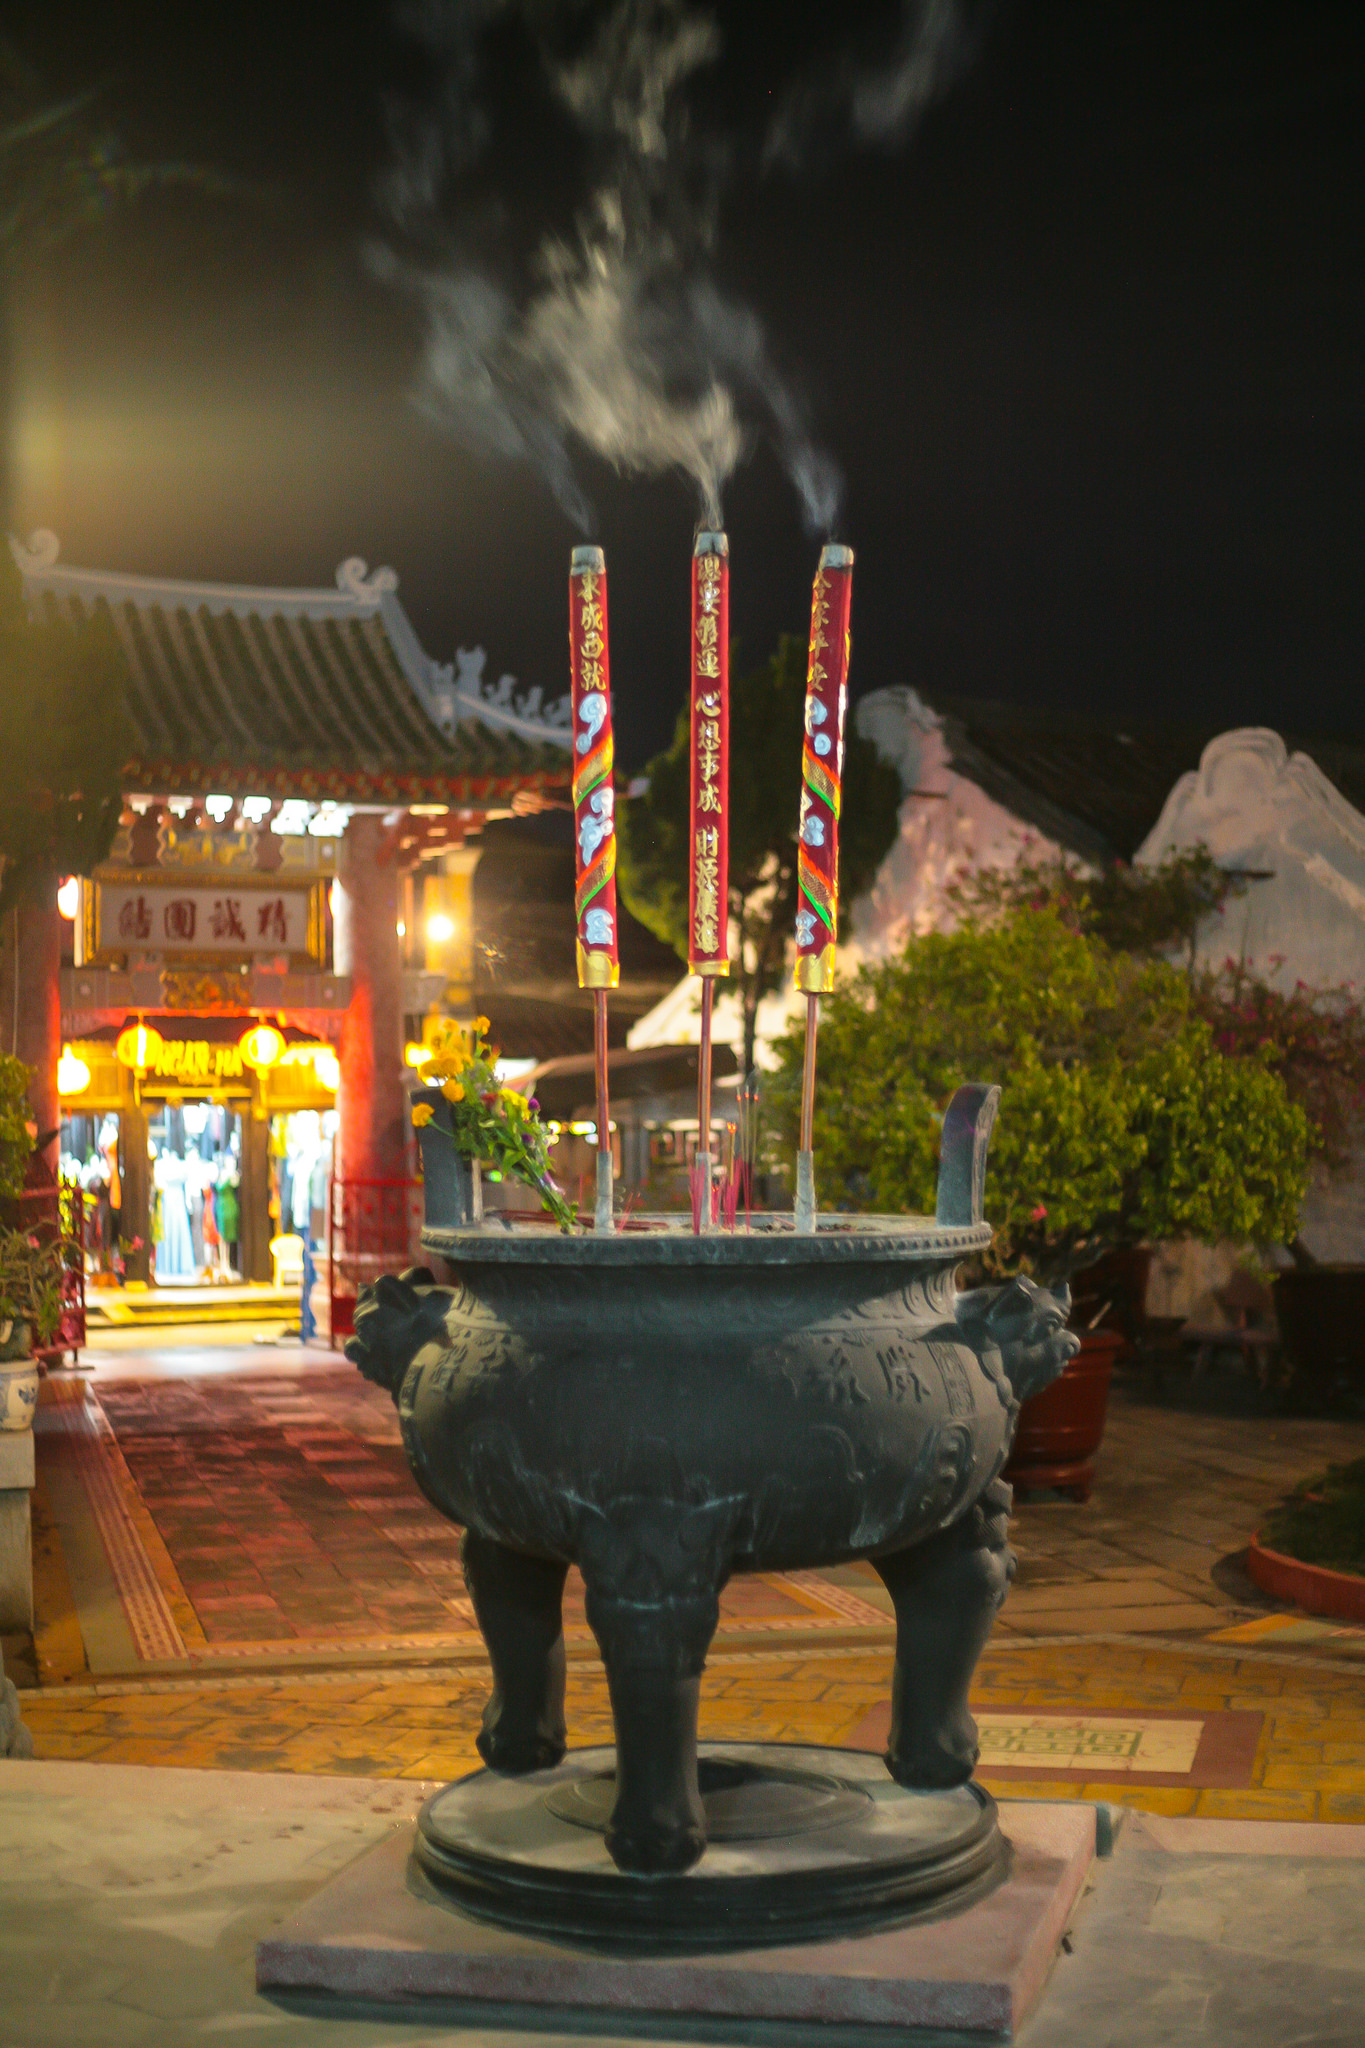 Burning incense in the courtyard at Phuoc Kien Assembly Hall, Vietnam